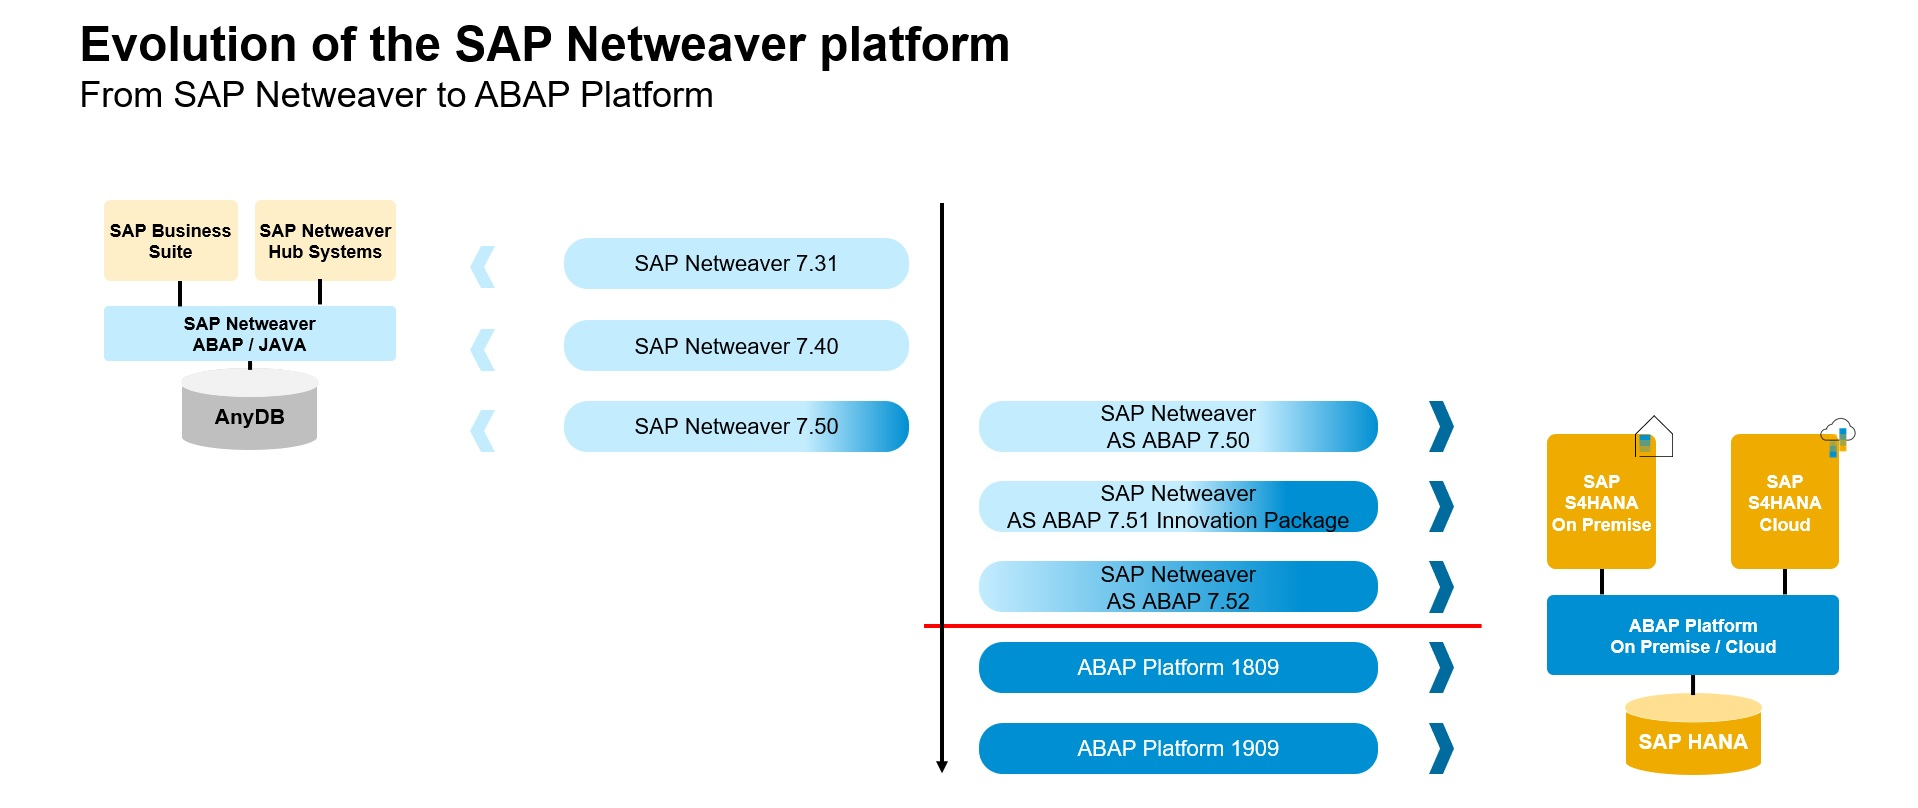 From%20SAP%20Netweaver%20AS%20ABAP%20to%20ABAP%20Platform